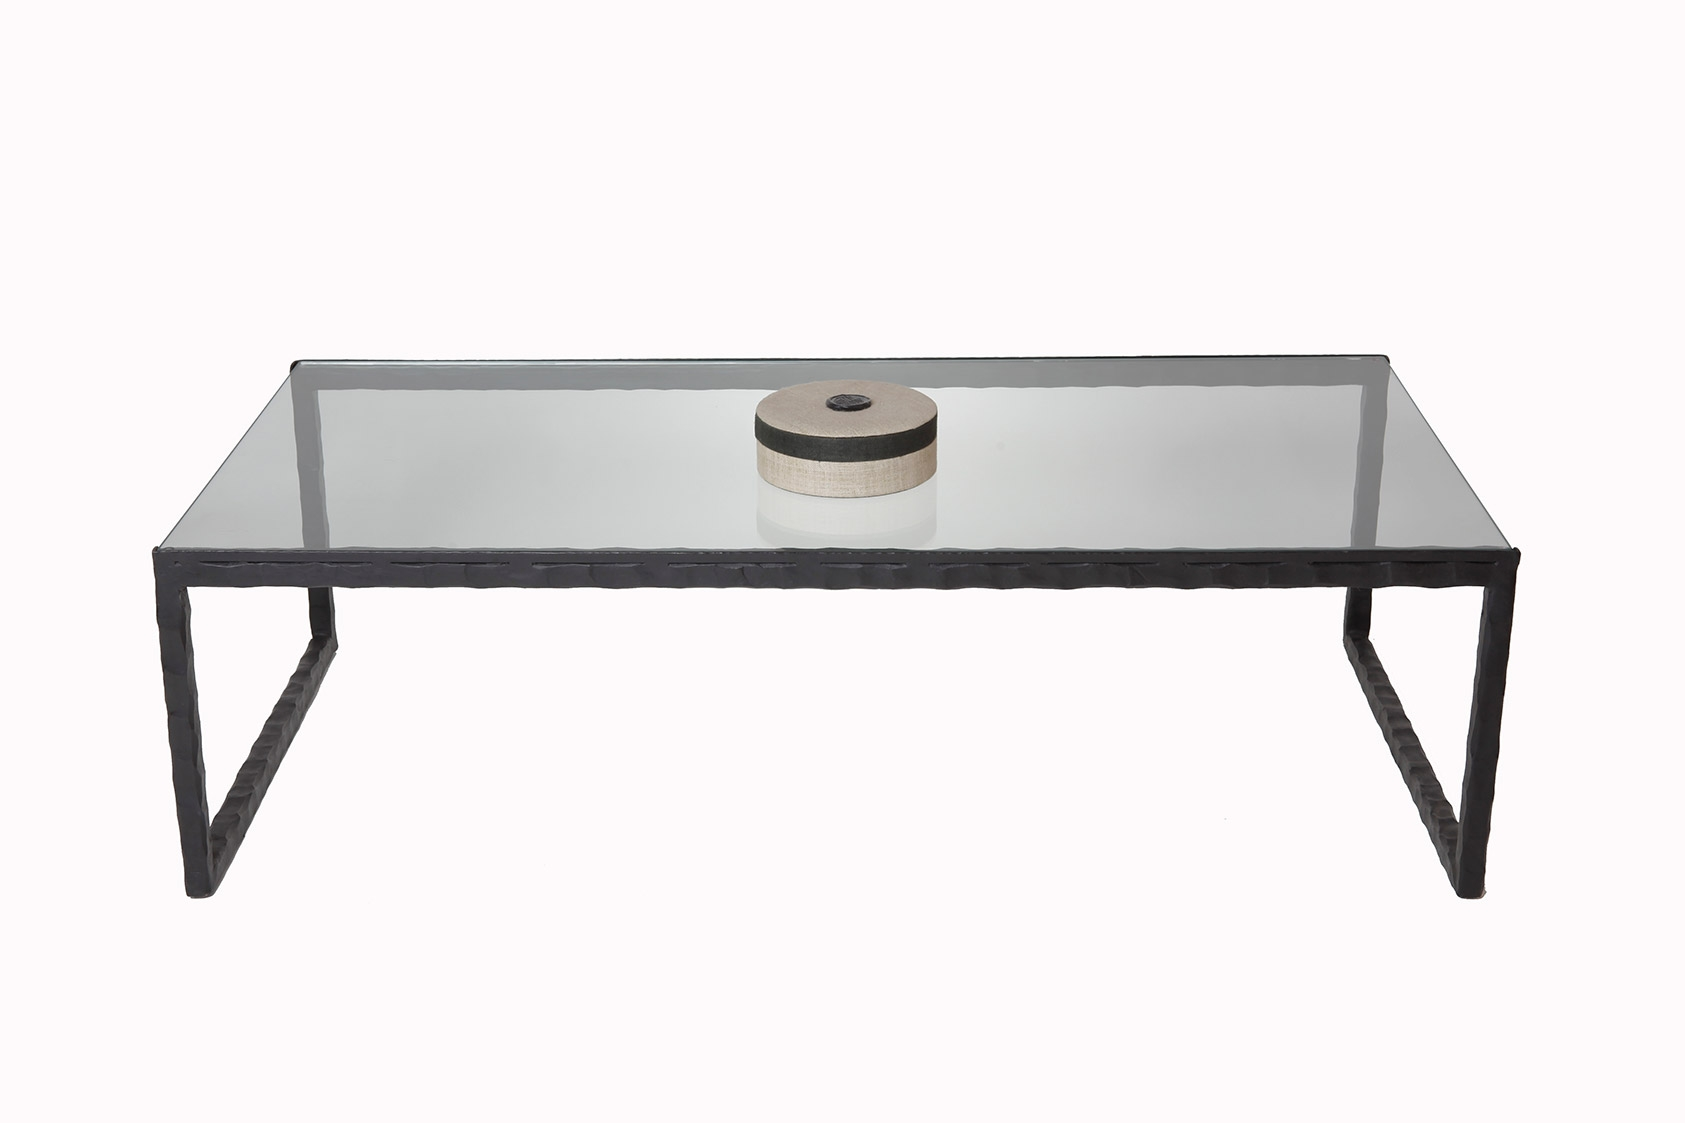 table basse en verre et fer mobilier design d coration d 39 int rieur